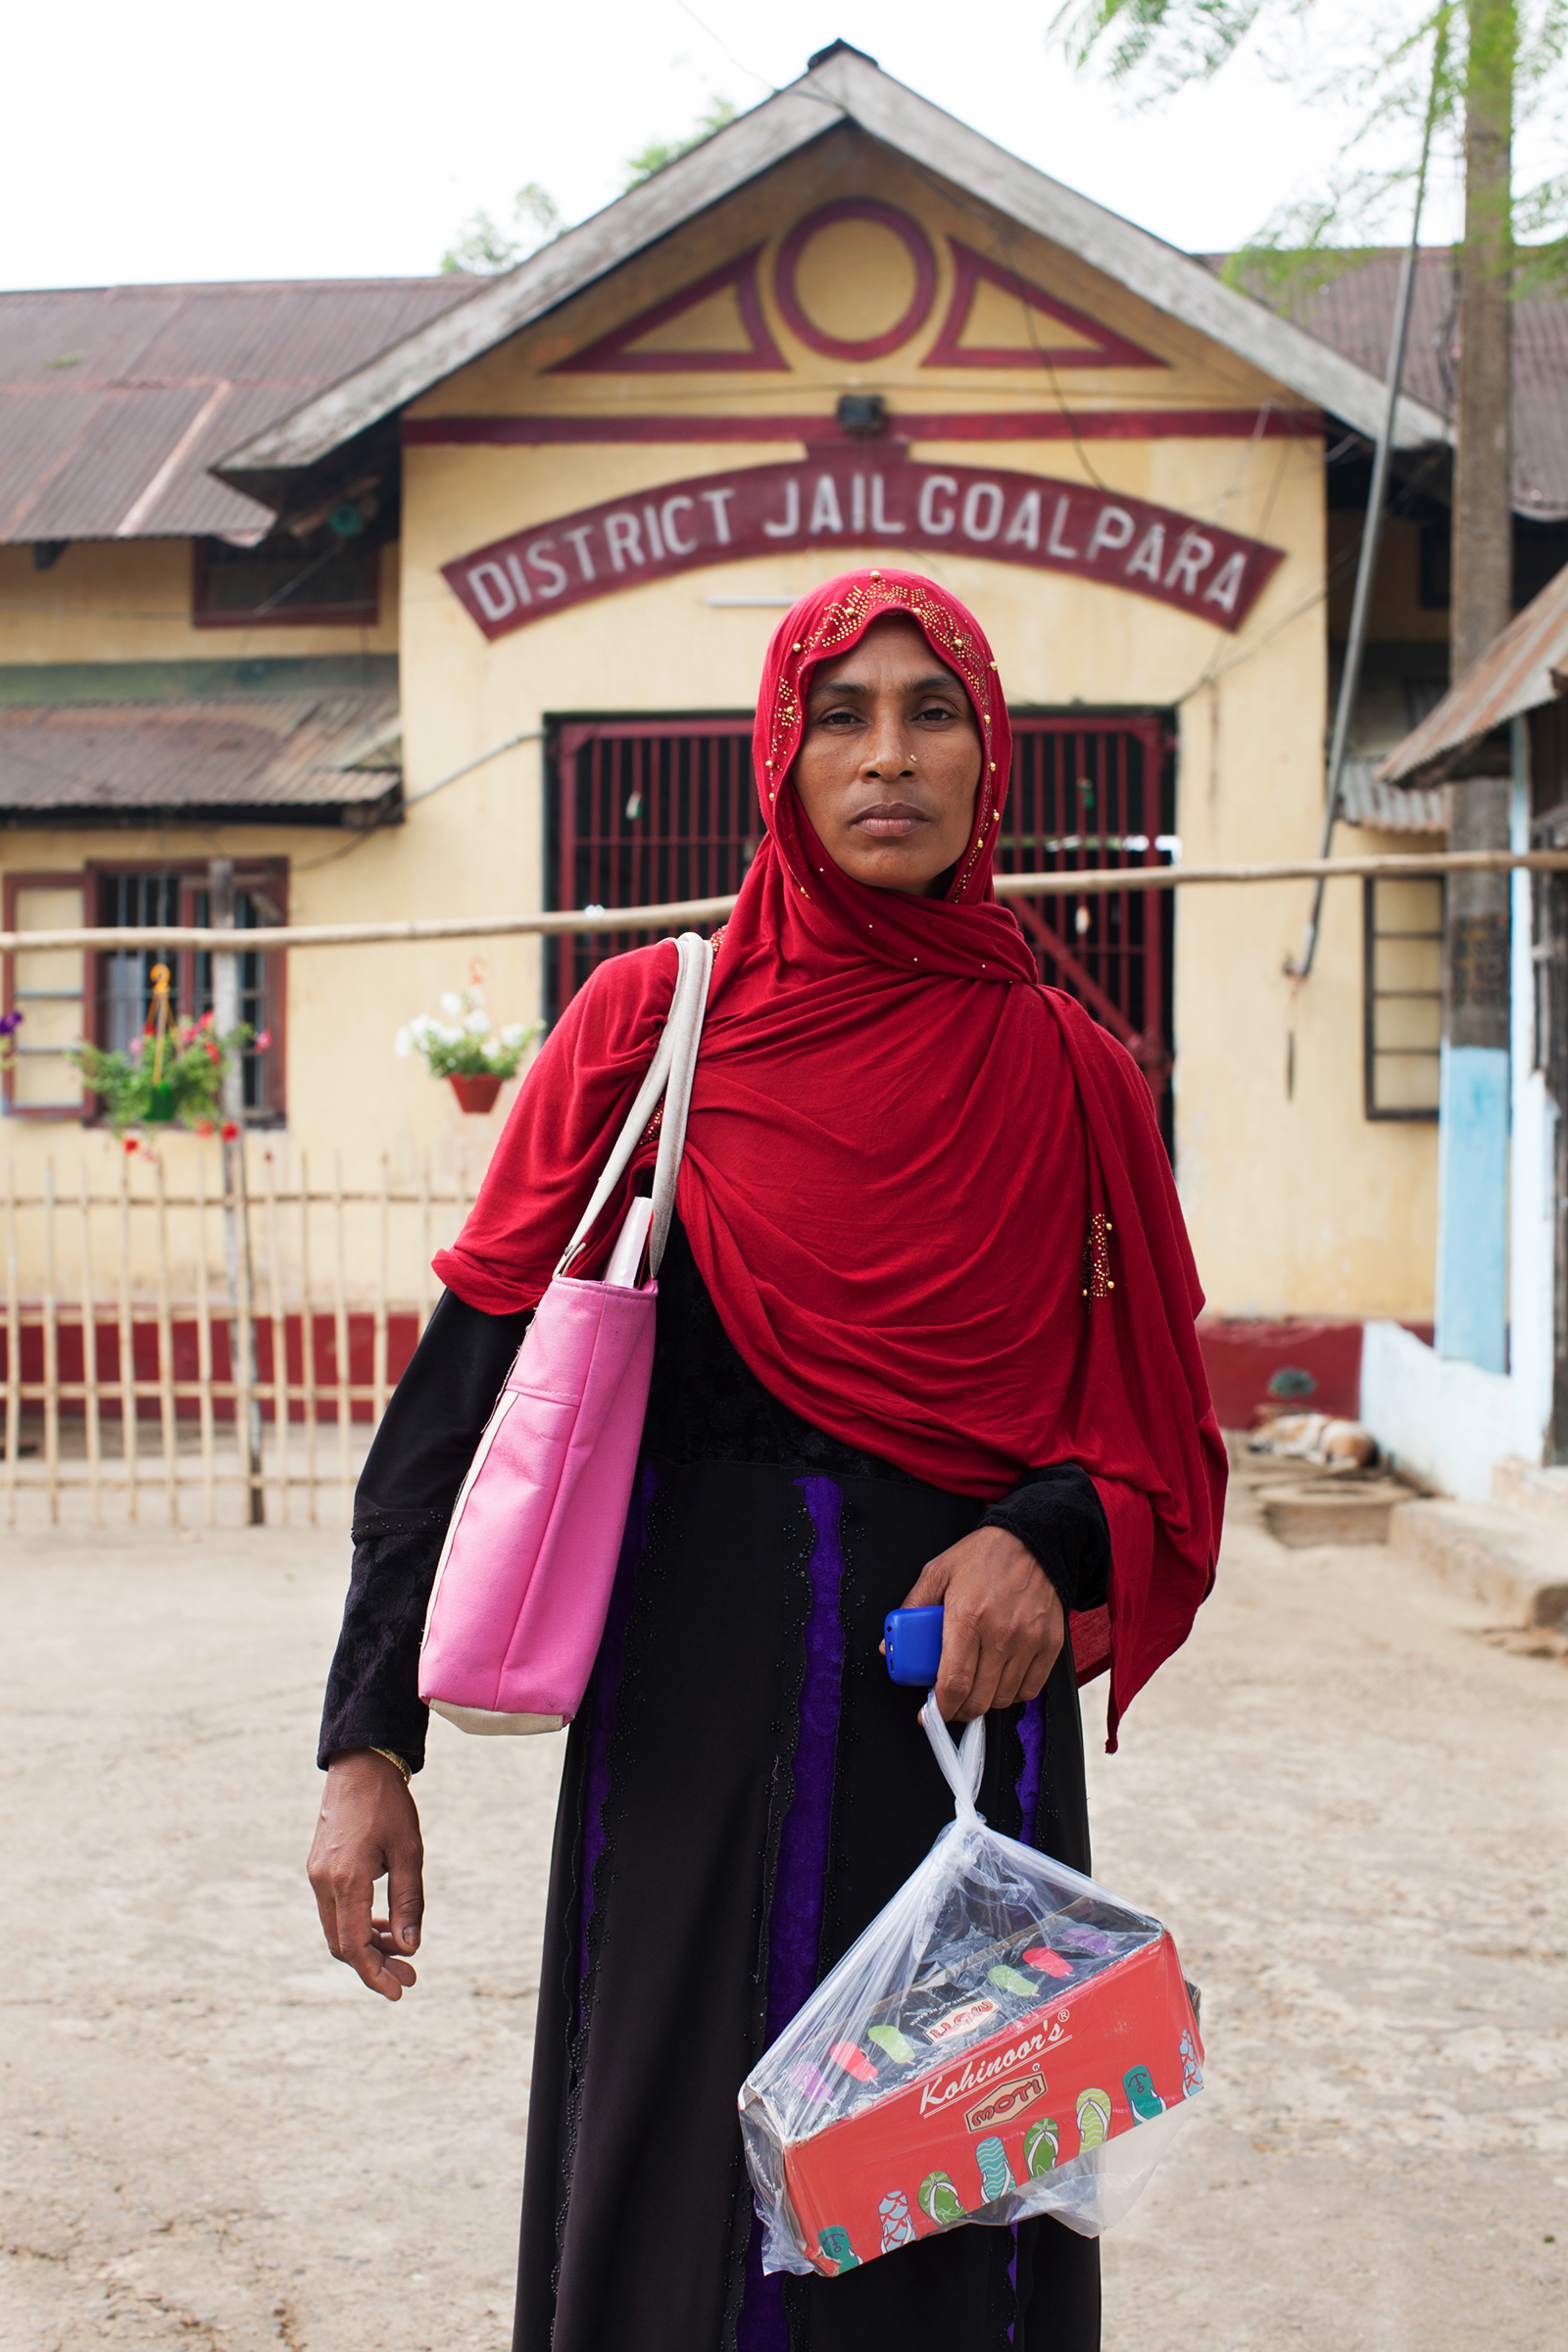 Samiran Nesa outside Goalpara district jail, where she is visiting her husband Sohidul Islam and carrying shoes to give him. Islam has been detained since December 2019, after a foreigners tribunal declared him an illegal immigrant